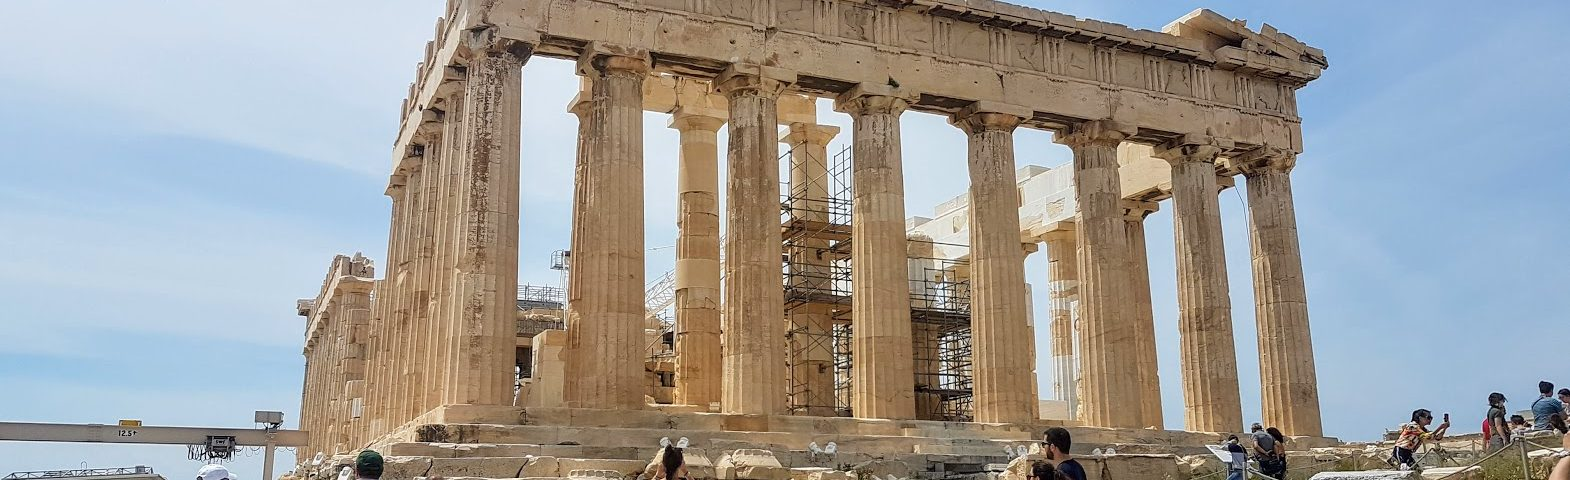 Tips for planning a trip to Greece - The Acropolis in Athens